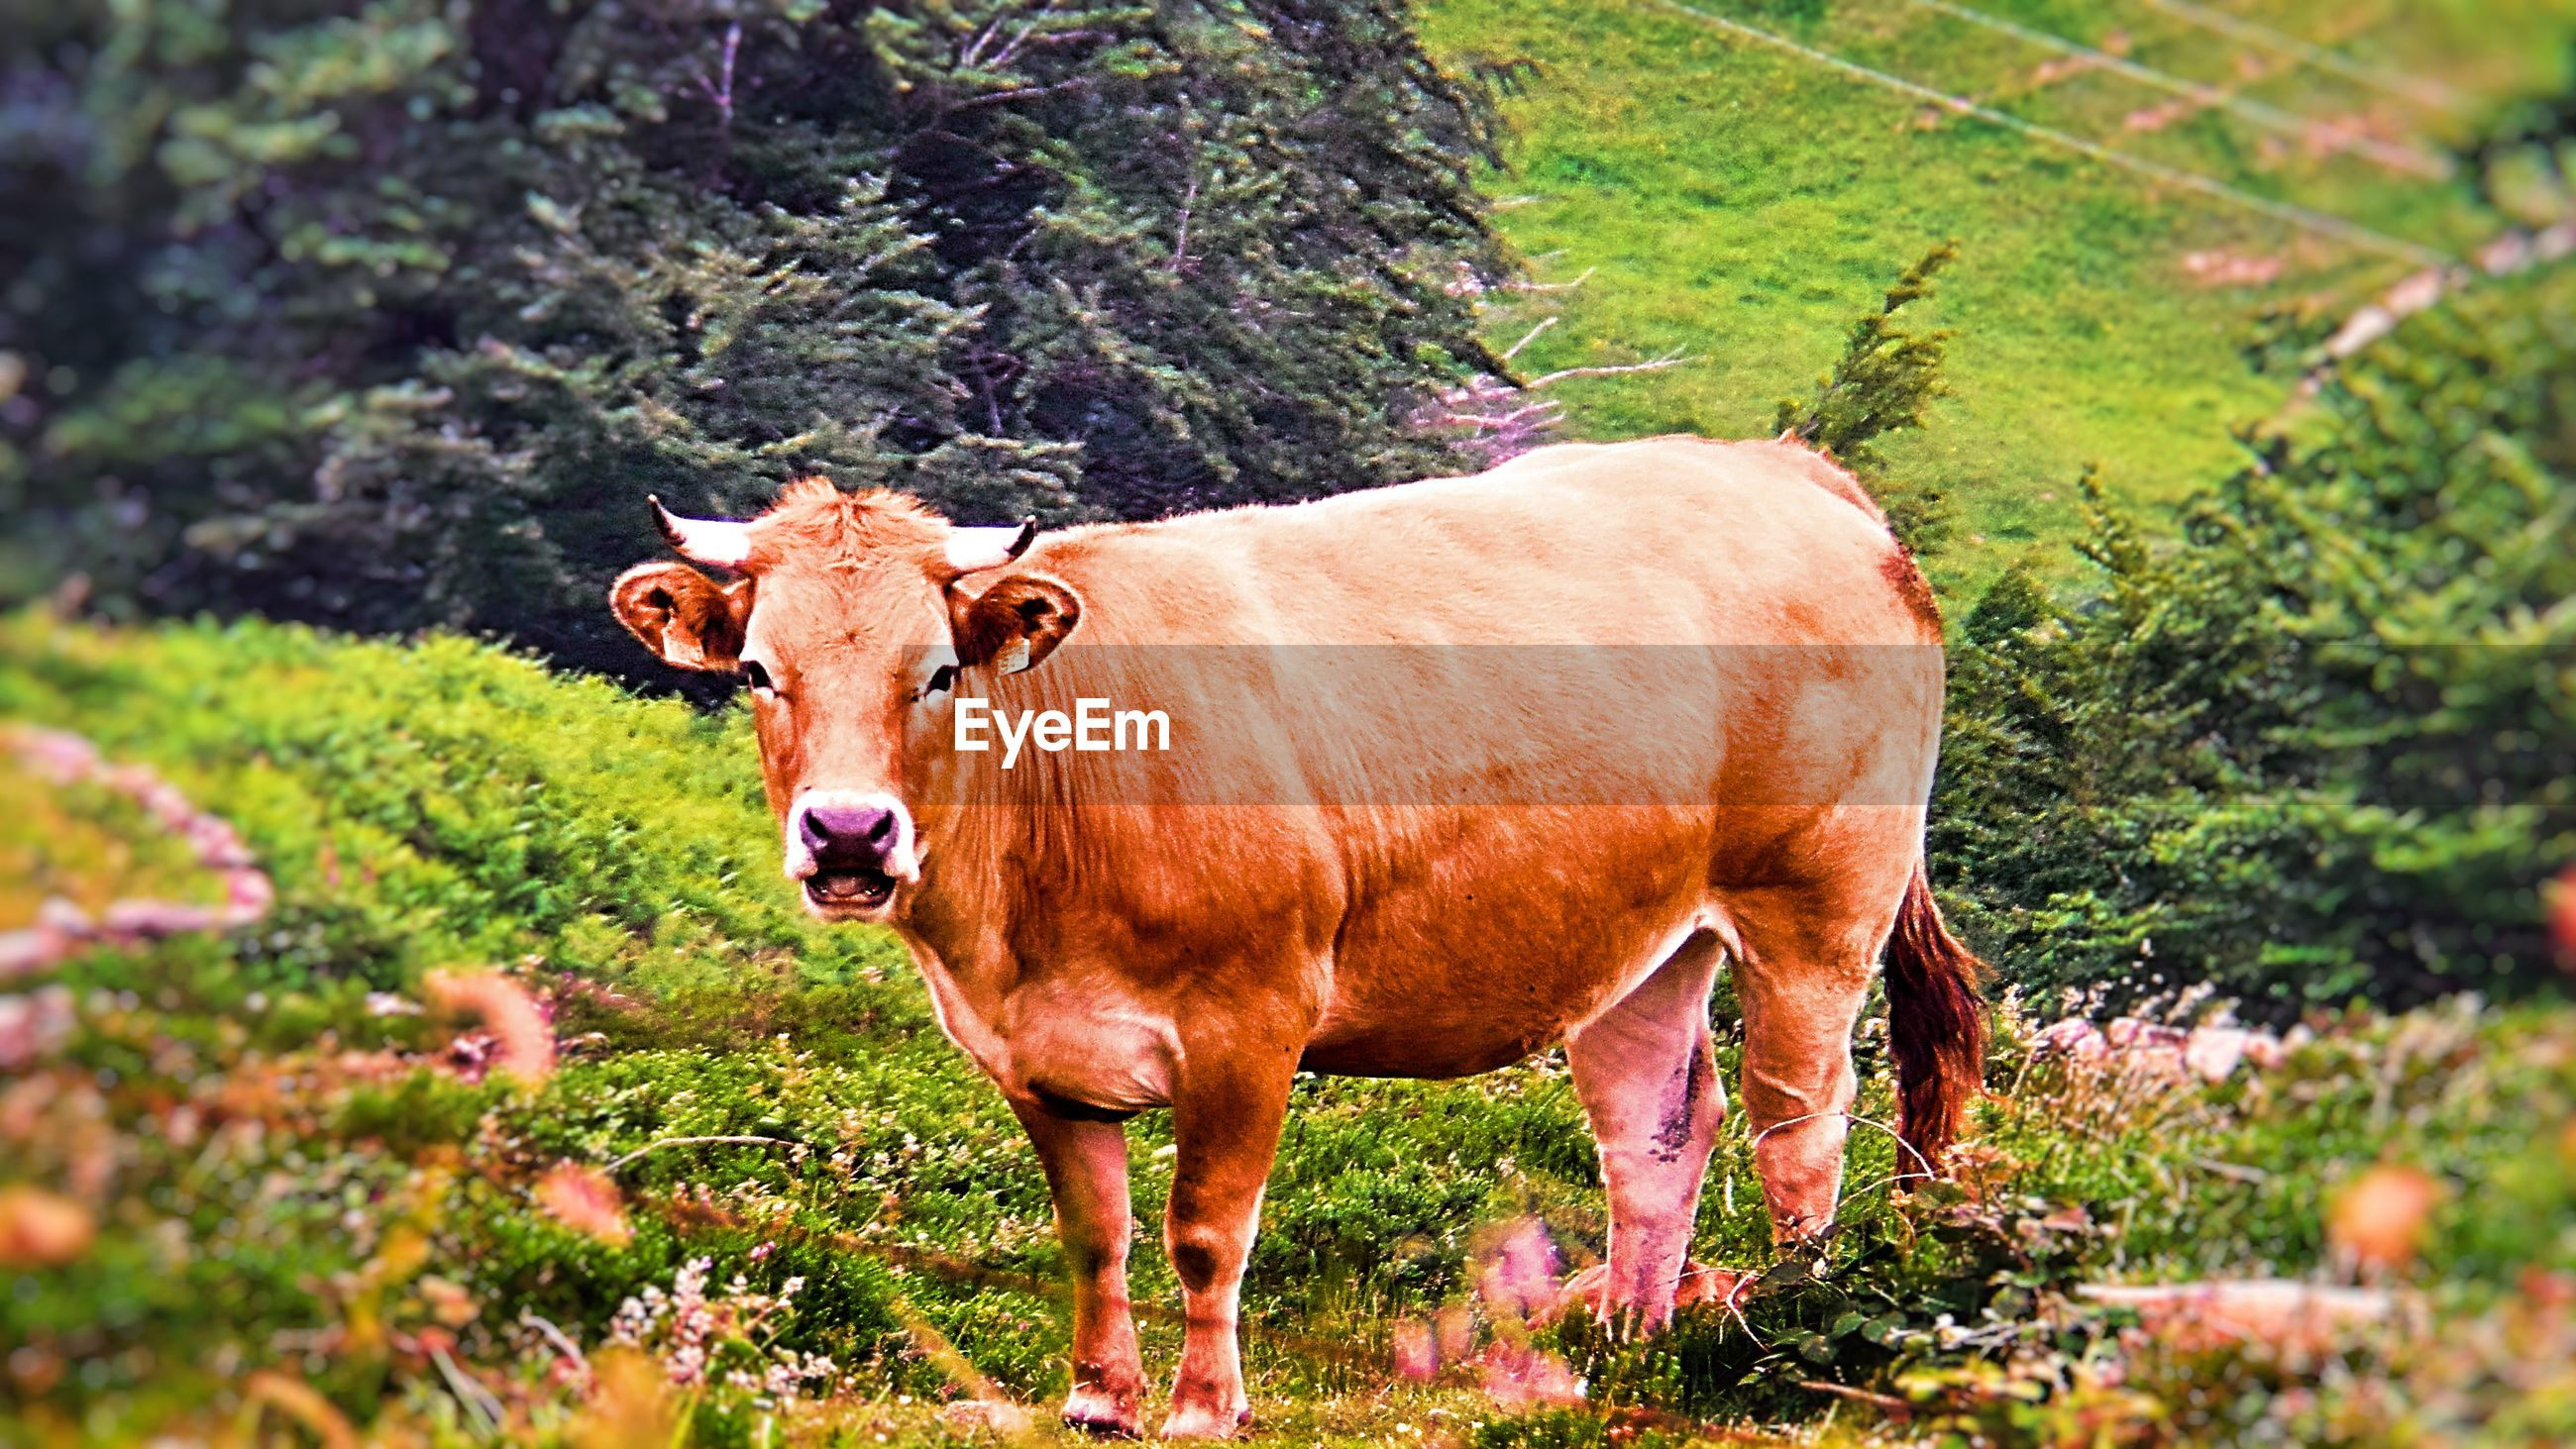 domestic animals, domestic cattle, cow, livestock, animal themes, mammal, cattle, one animal, field, standing, grass, nature, tree, day, highland cattle, outdoors, no people, farm animal, grazing, landscape, full length, beauty in nature